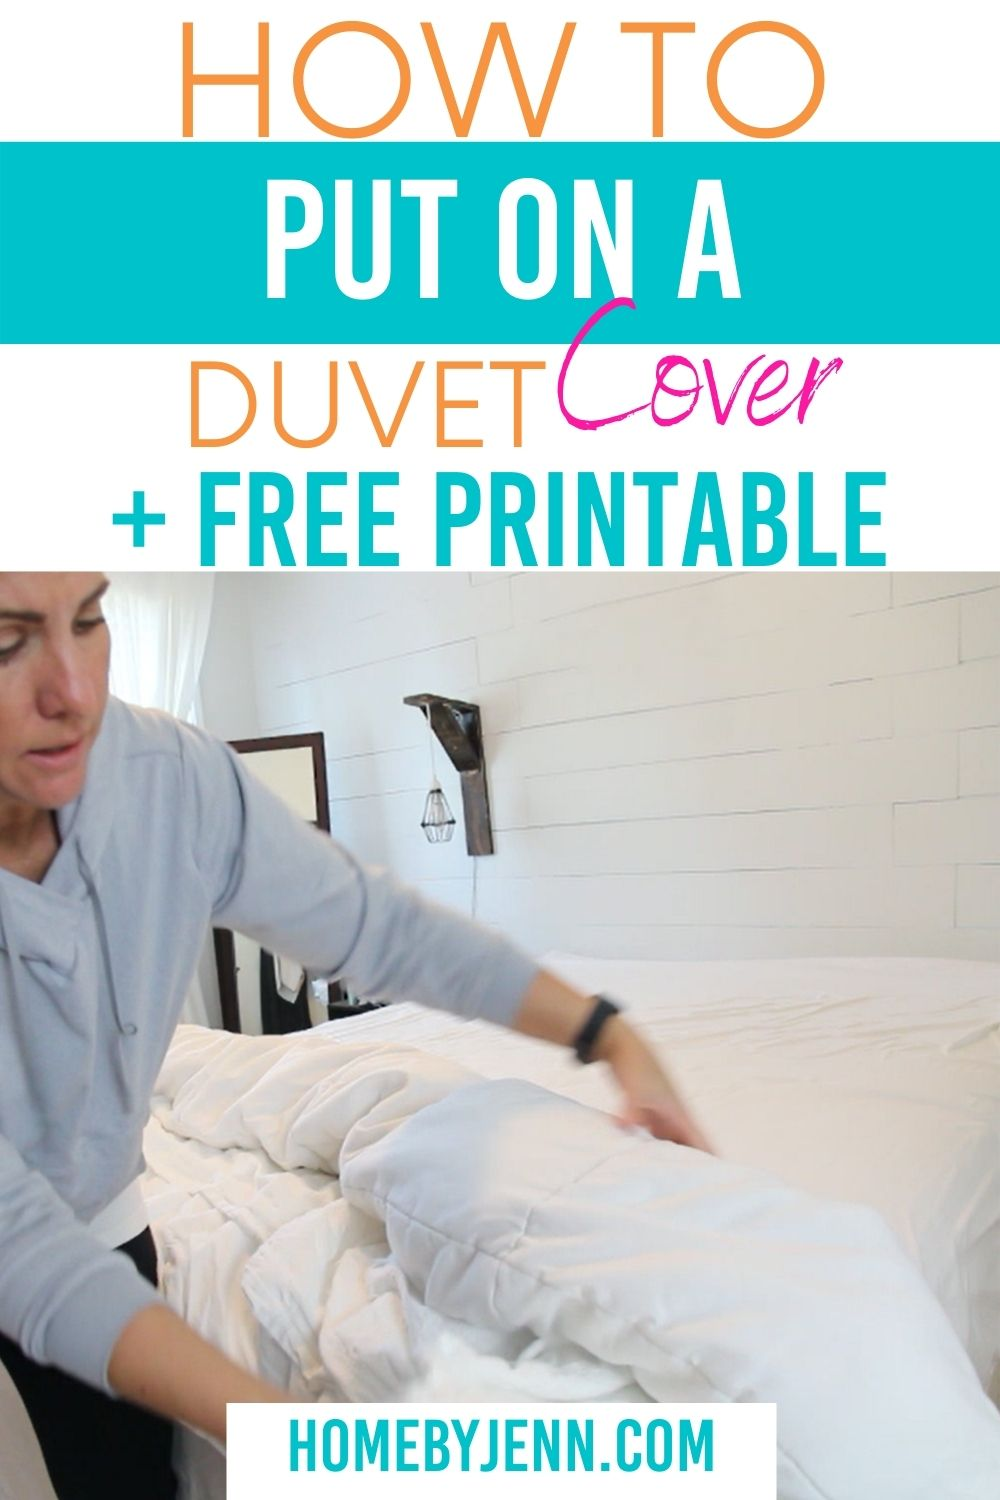 Learn how simple it is to put on a duvet cover. This step by step written and video tutorial will show you how to put on a duvet cover without the need of help from anyone. #cleaning #makingthebed #duvetcover via @homebyjenn